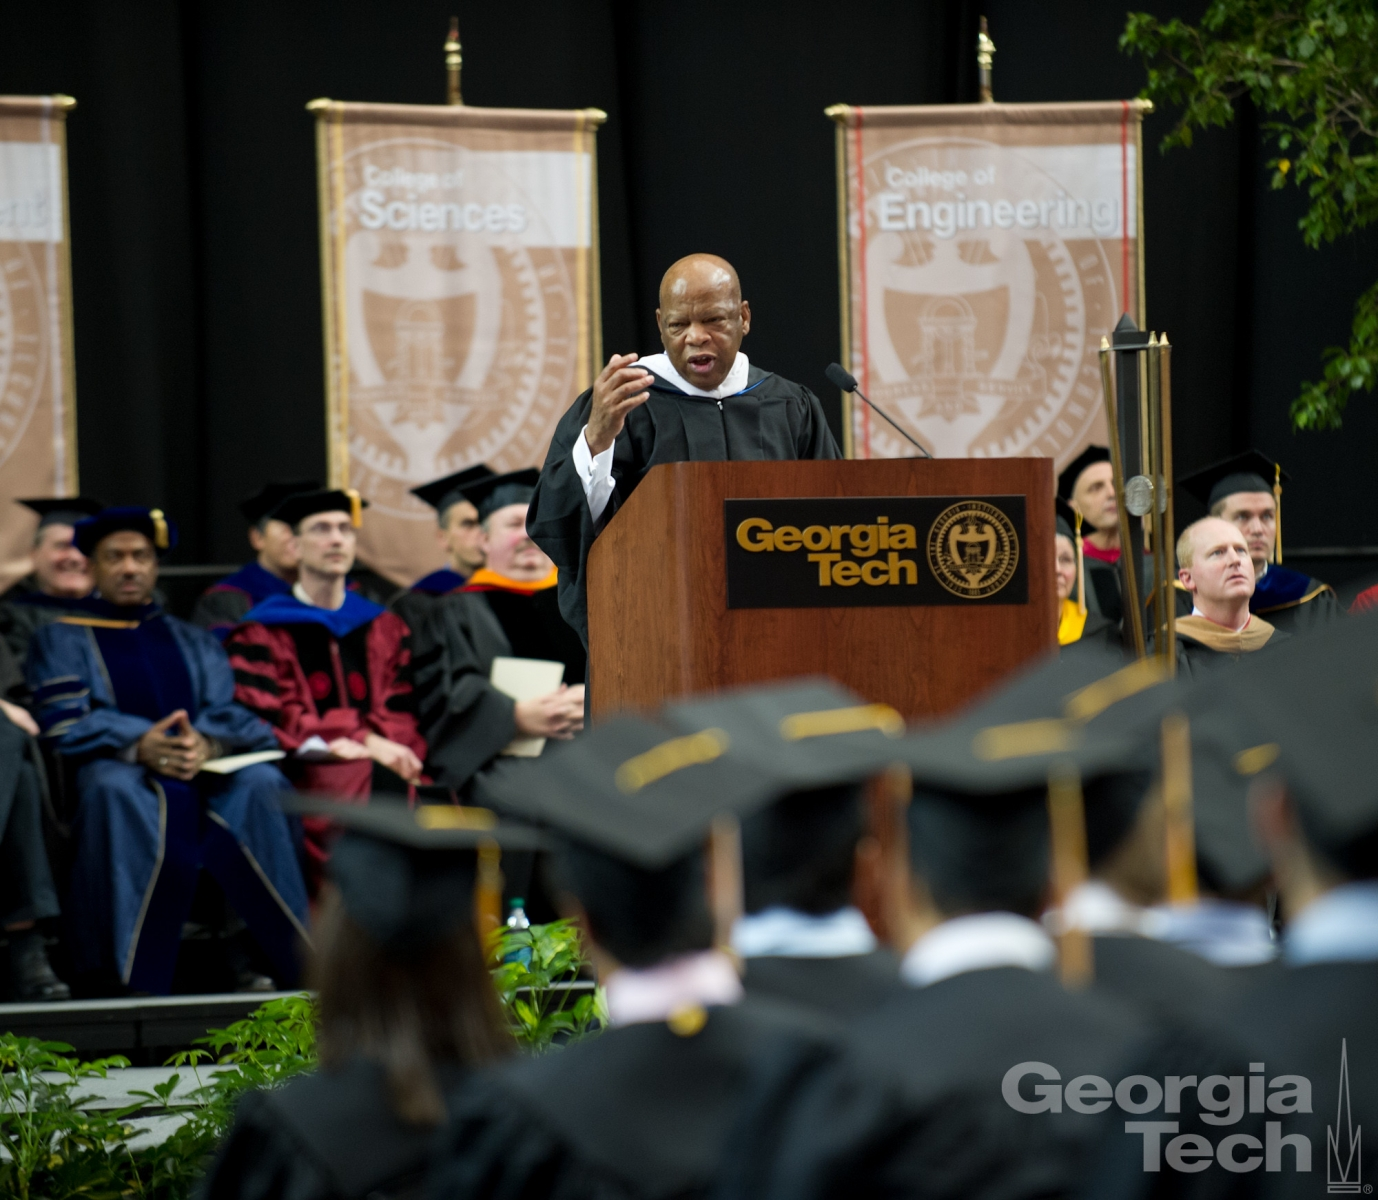 A photo of John Lewis giving his December 2011 commencement address at Georgia Tech.